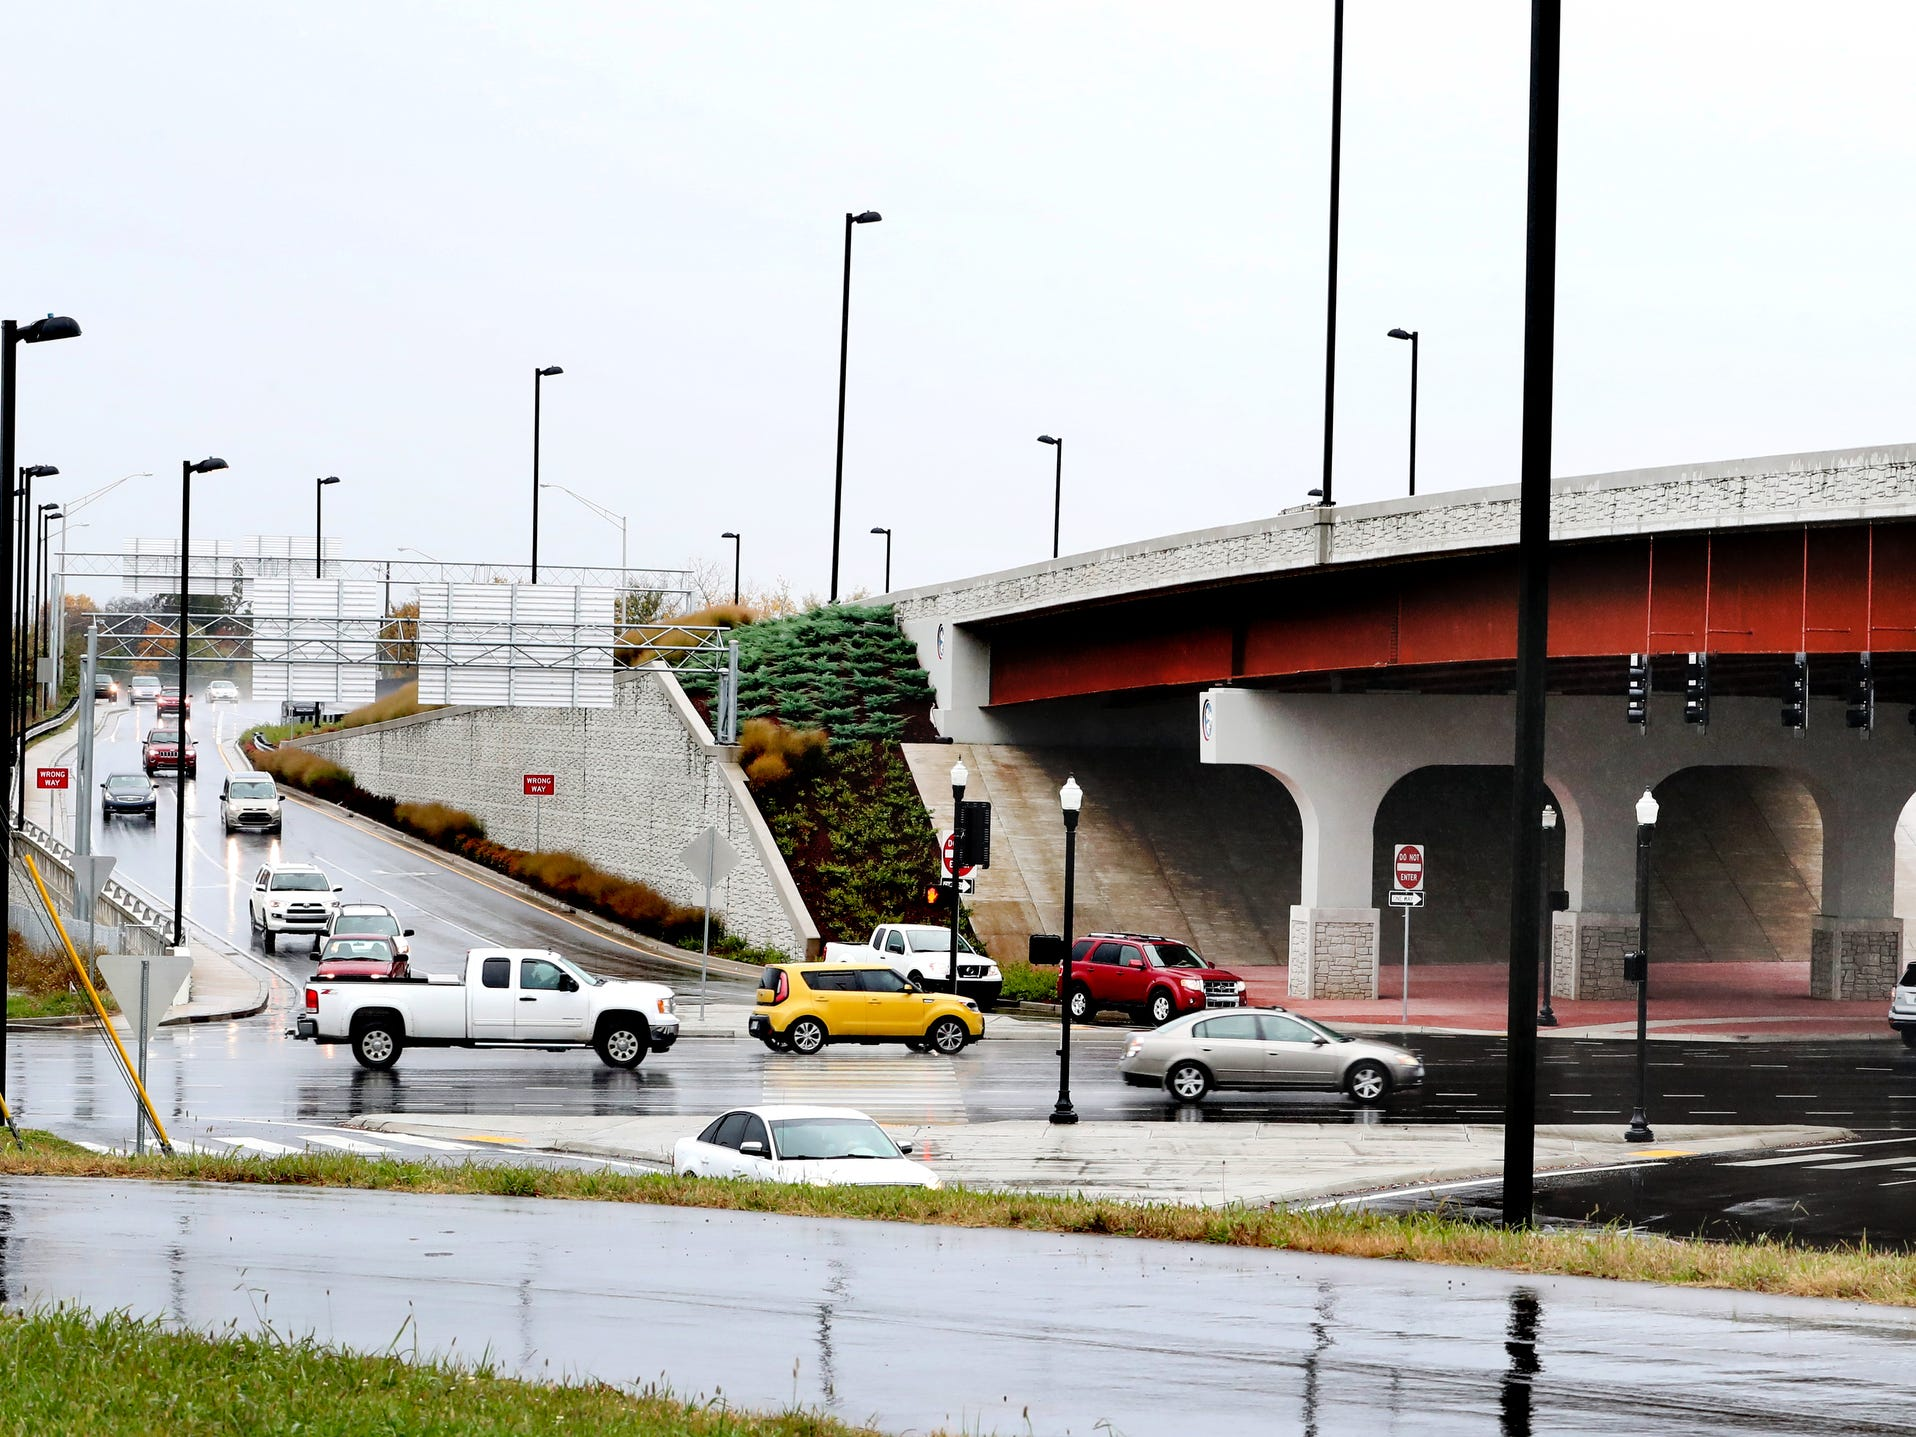 Traffic flows under the Bridge over Broad bridge, on Wednesday, Nov. 7, 2018, that opened nearly a year ago in December of 2017.